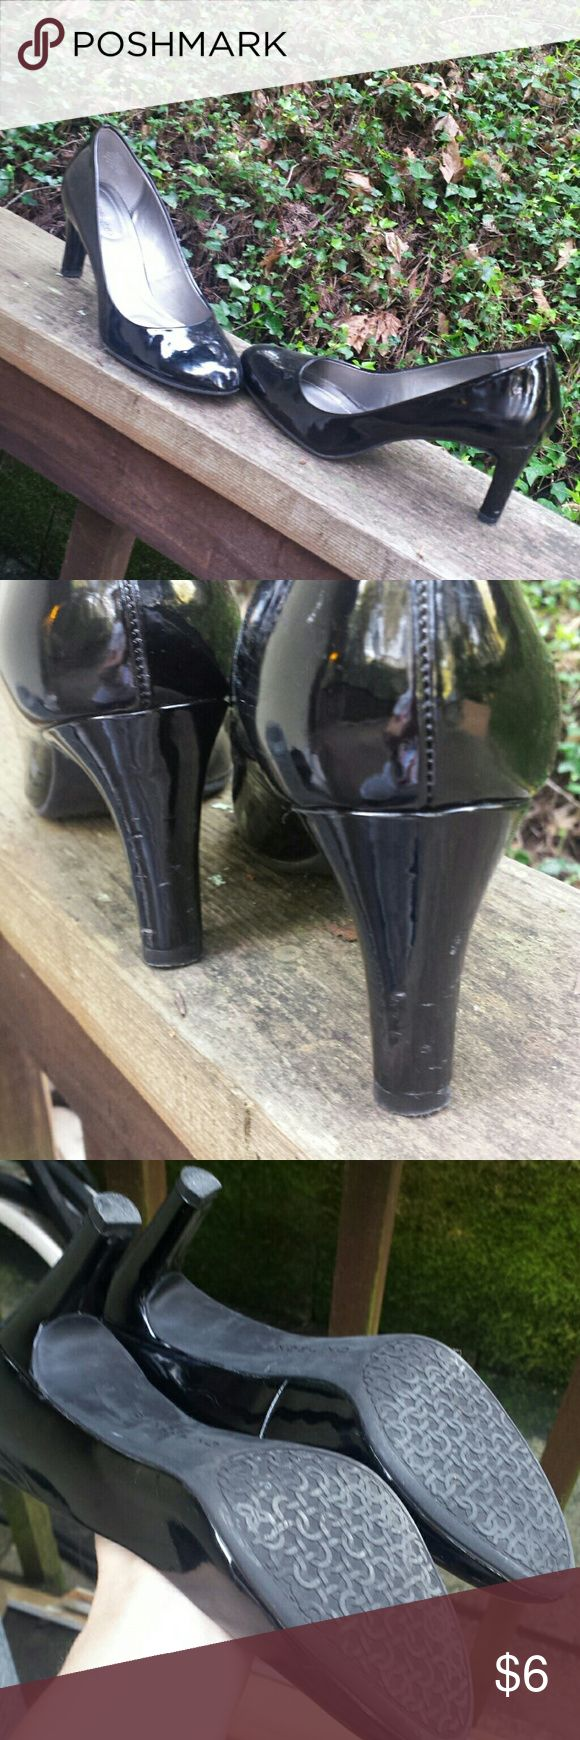 """Bandolino Patent Leather Pumps Black patent leather pumps.  Heel measures at 2 1/2"""".  Super comfortable  (Bandolino B Flexible). Heels are a little scuffed,  rest of shoes in pretty good condition. Bandolino Shoes Heels"""